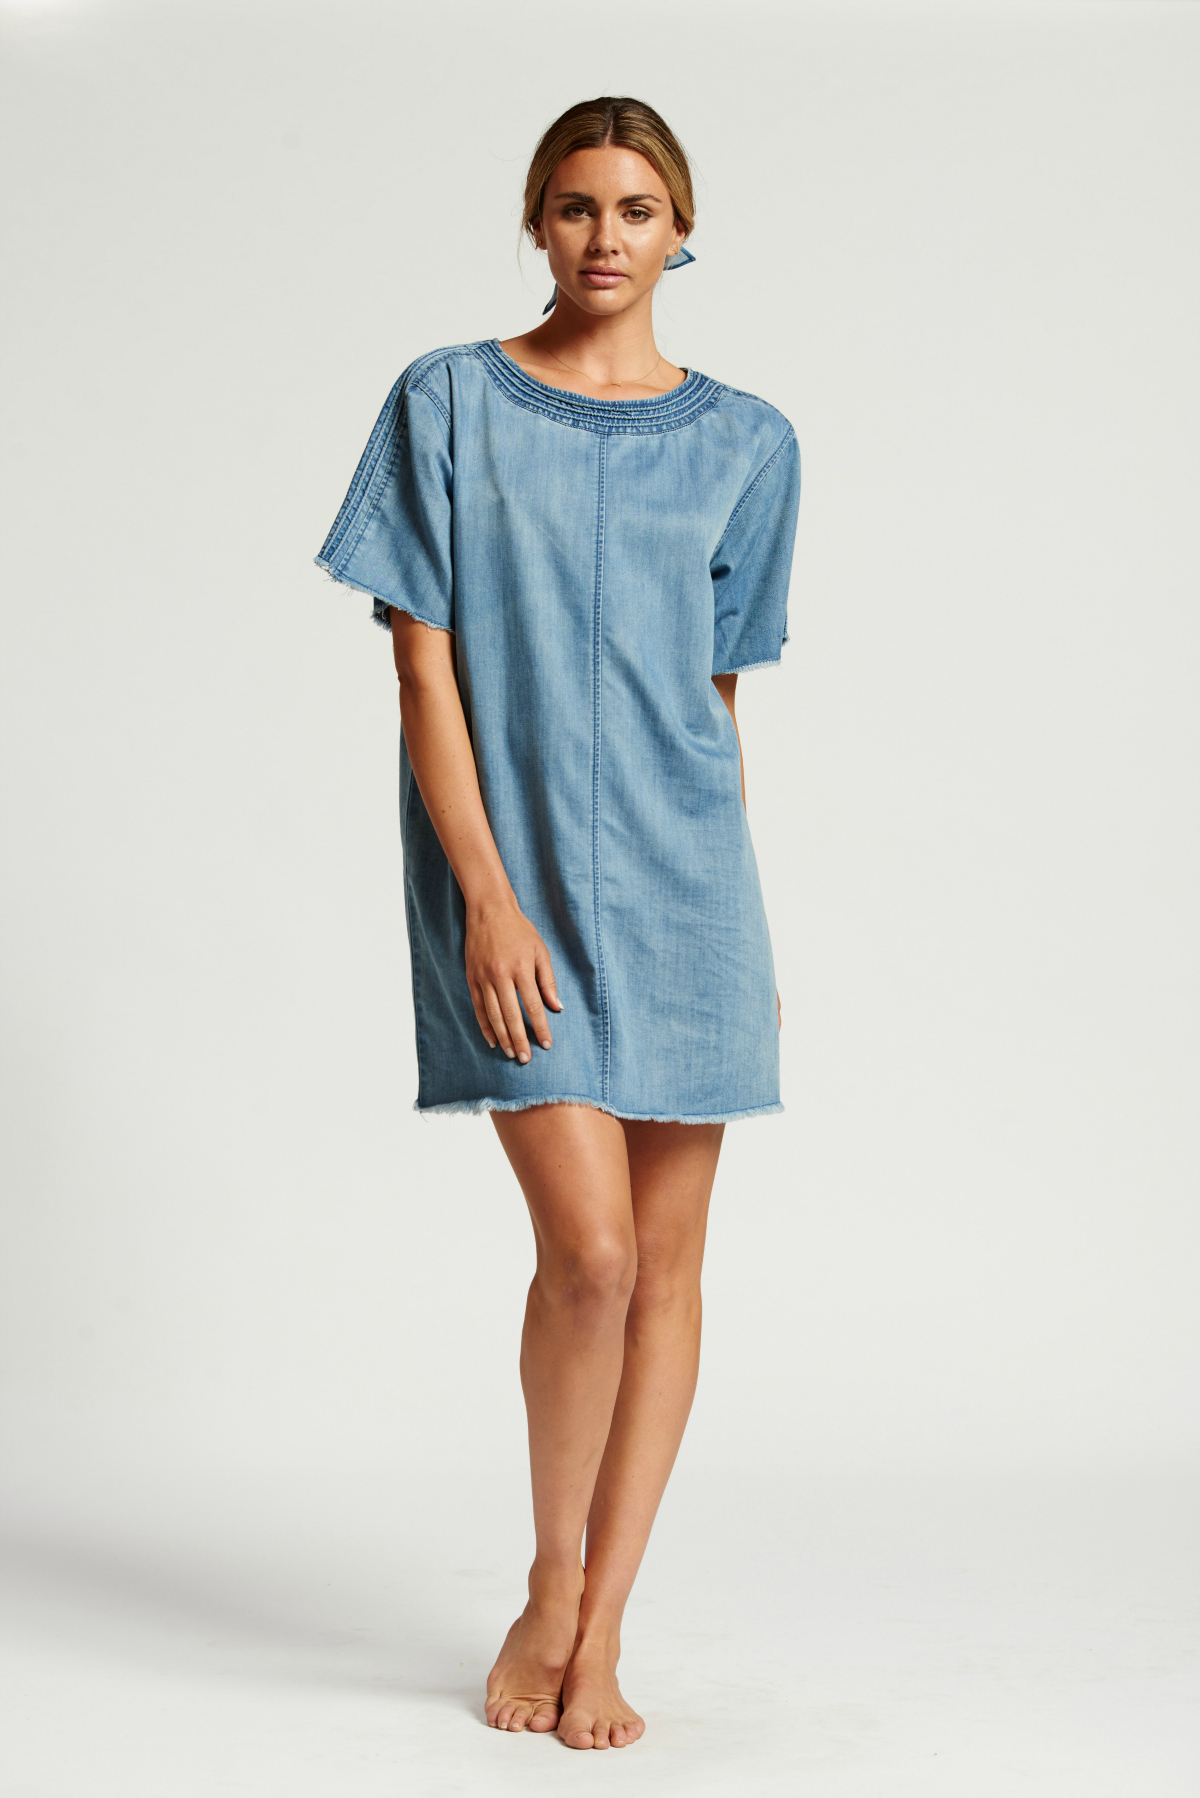 Bohemian Traders denim shift dress